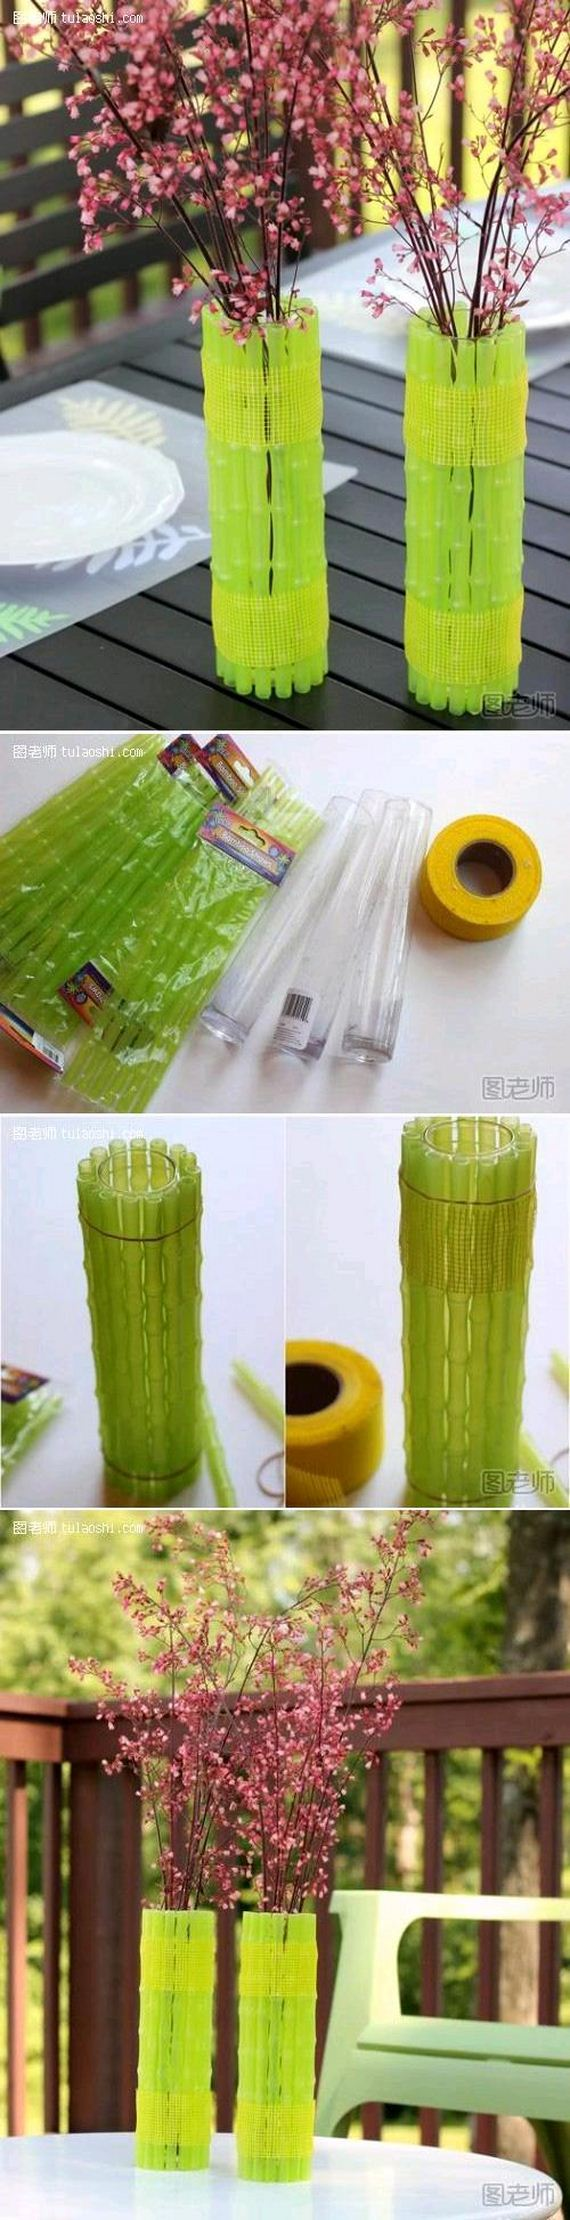 24-diy-home-craft-ideas-and-tips-thrifty-home-decor-1